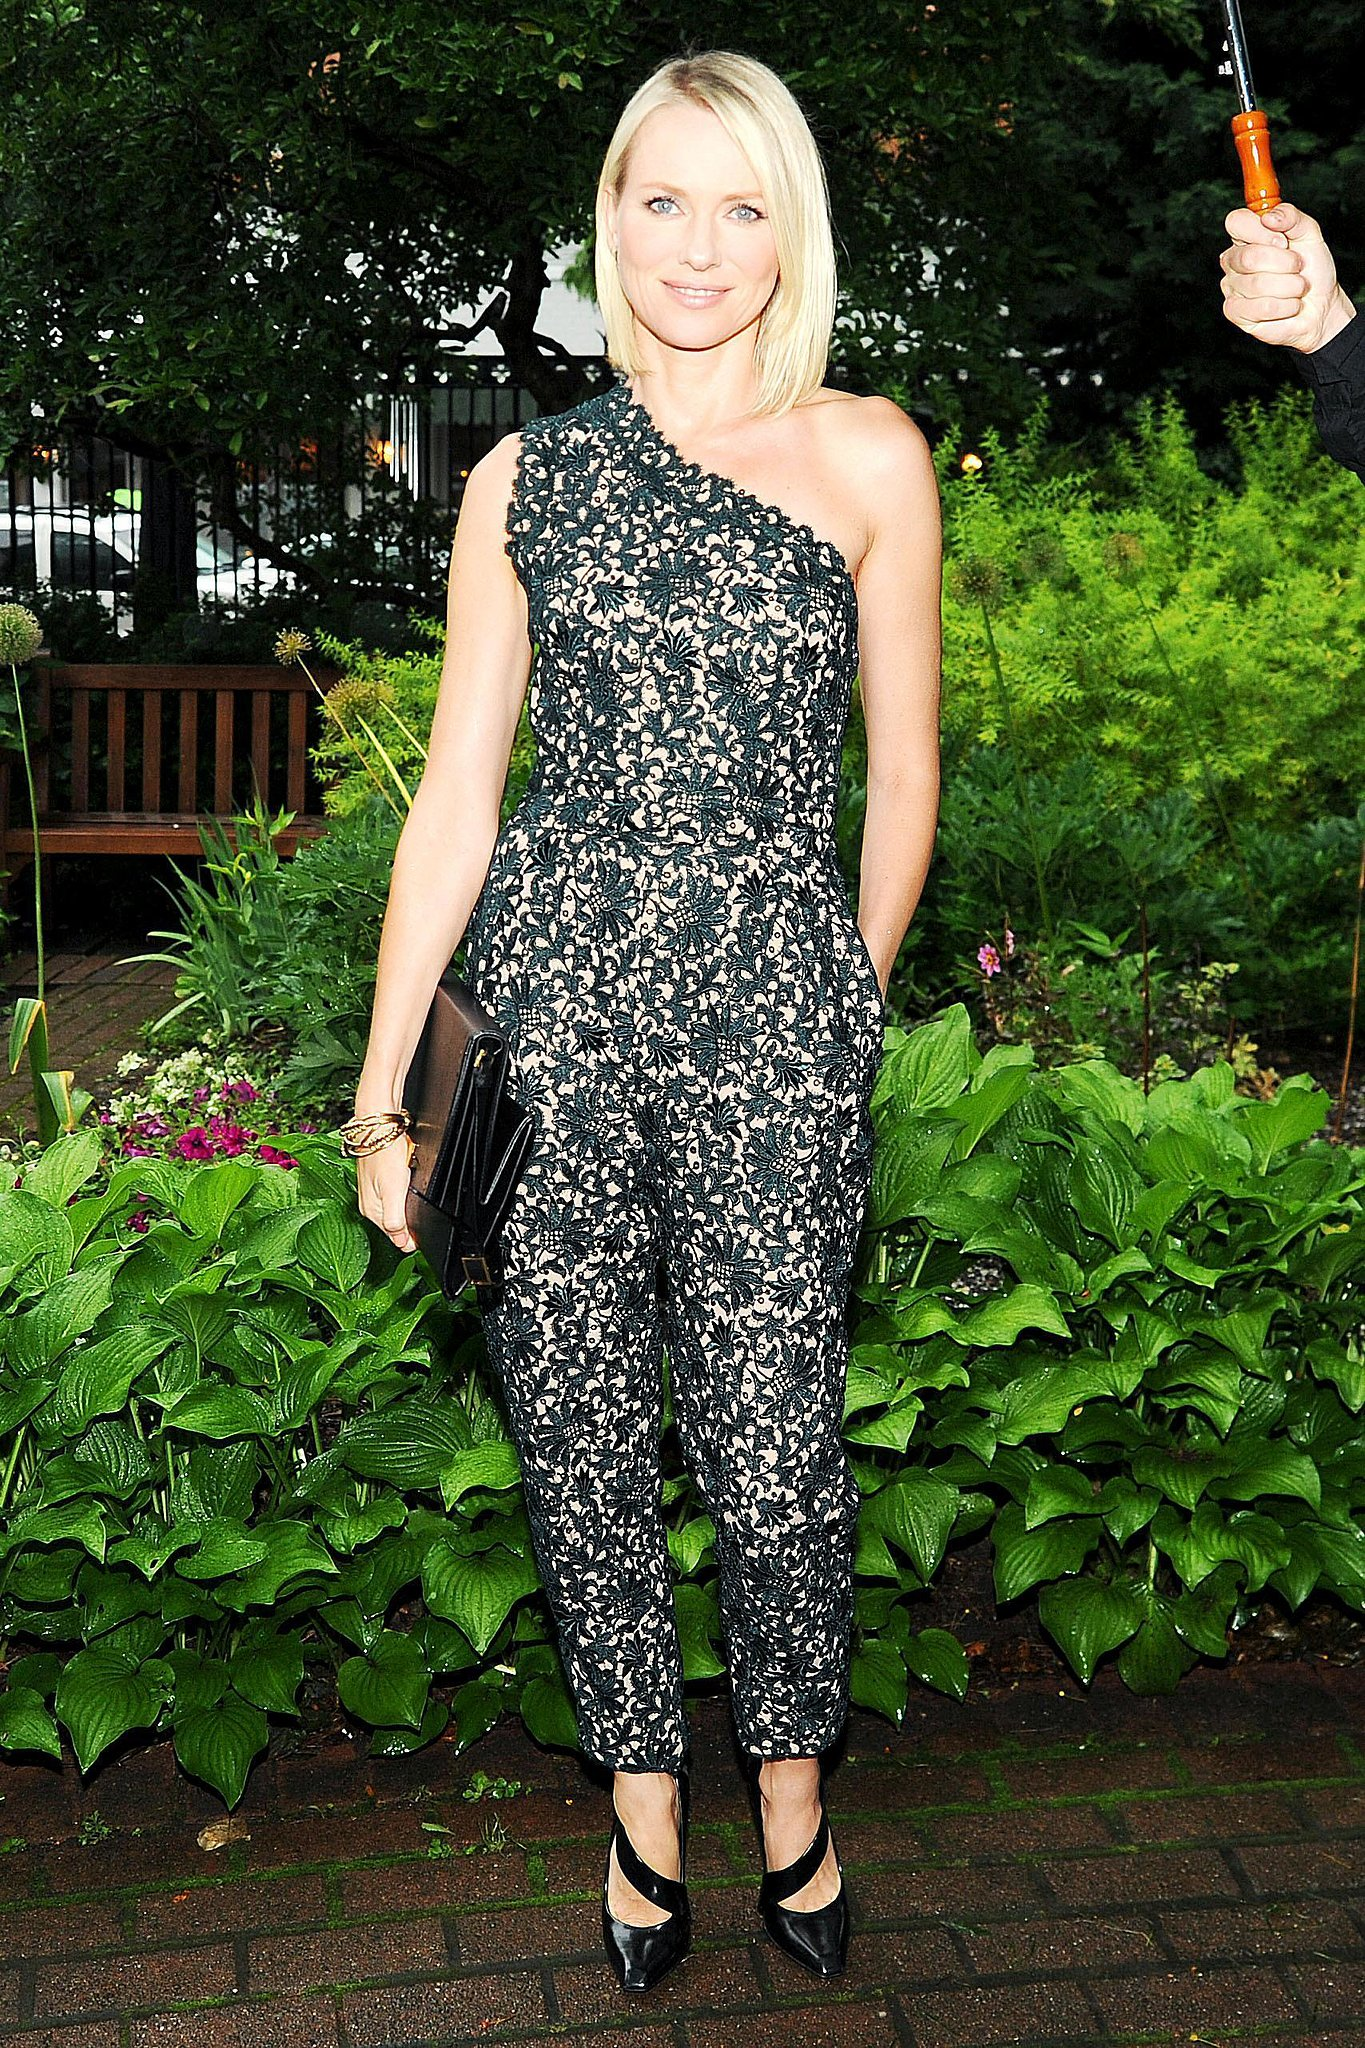 Naomi Watts at Stella McCartney's Resort 2014 presentation in New York. Source: Billy Farrell/BFAnyc.com